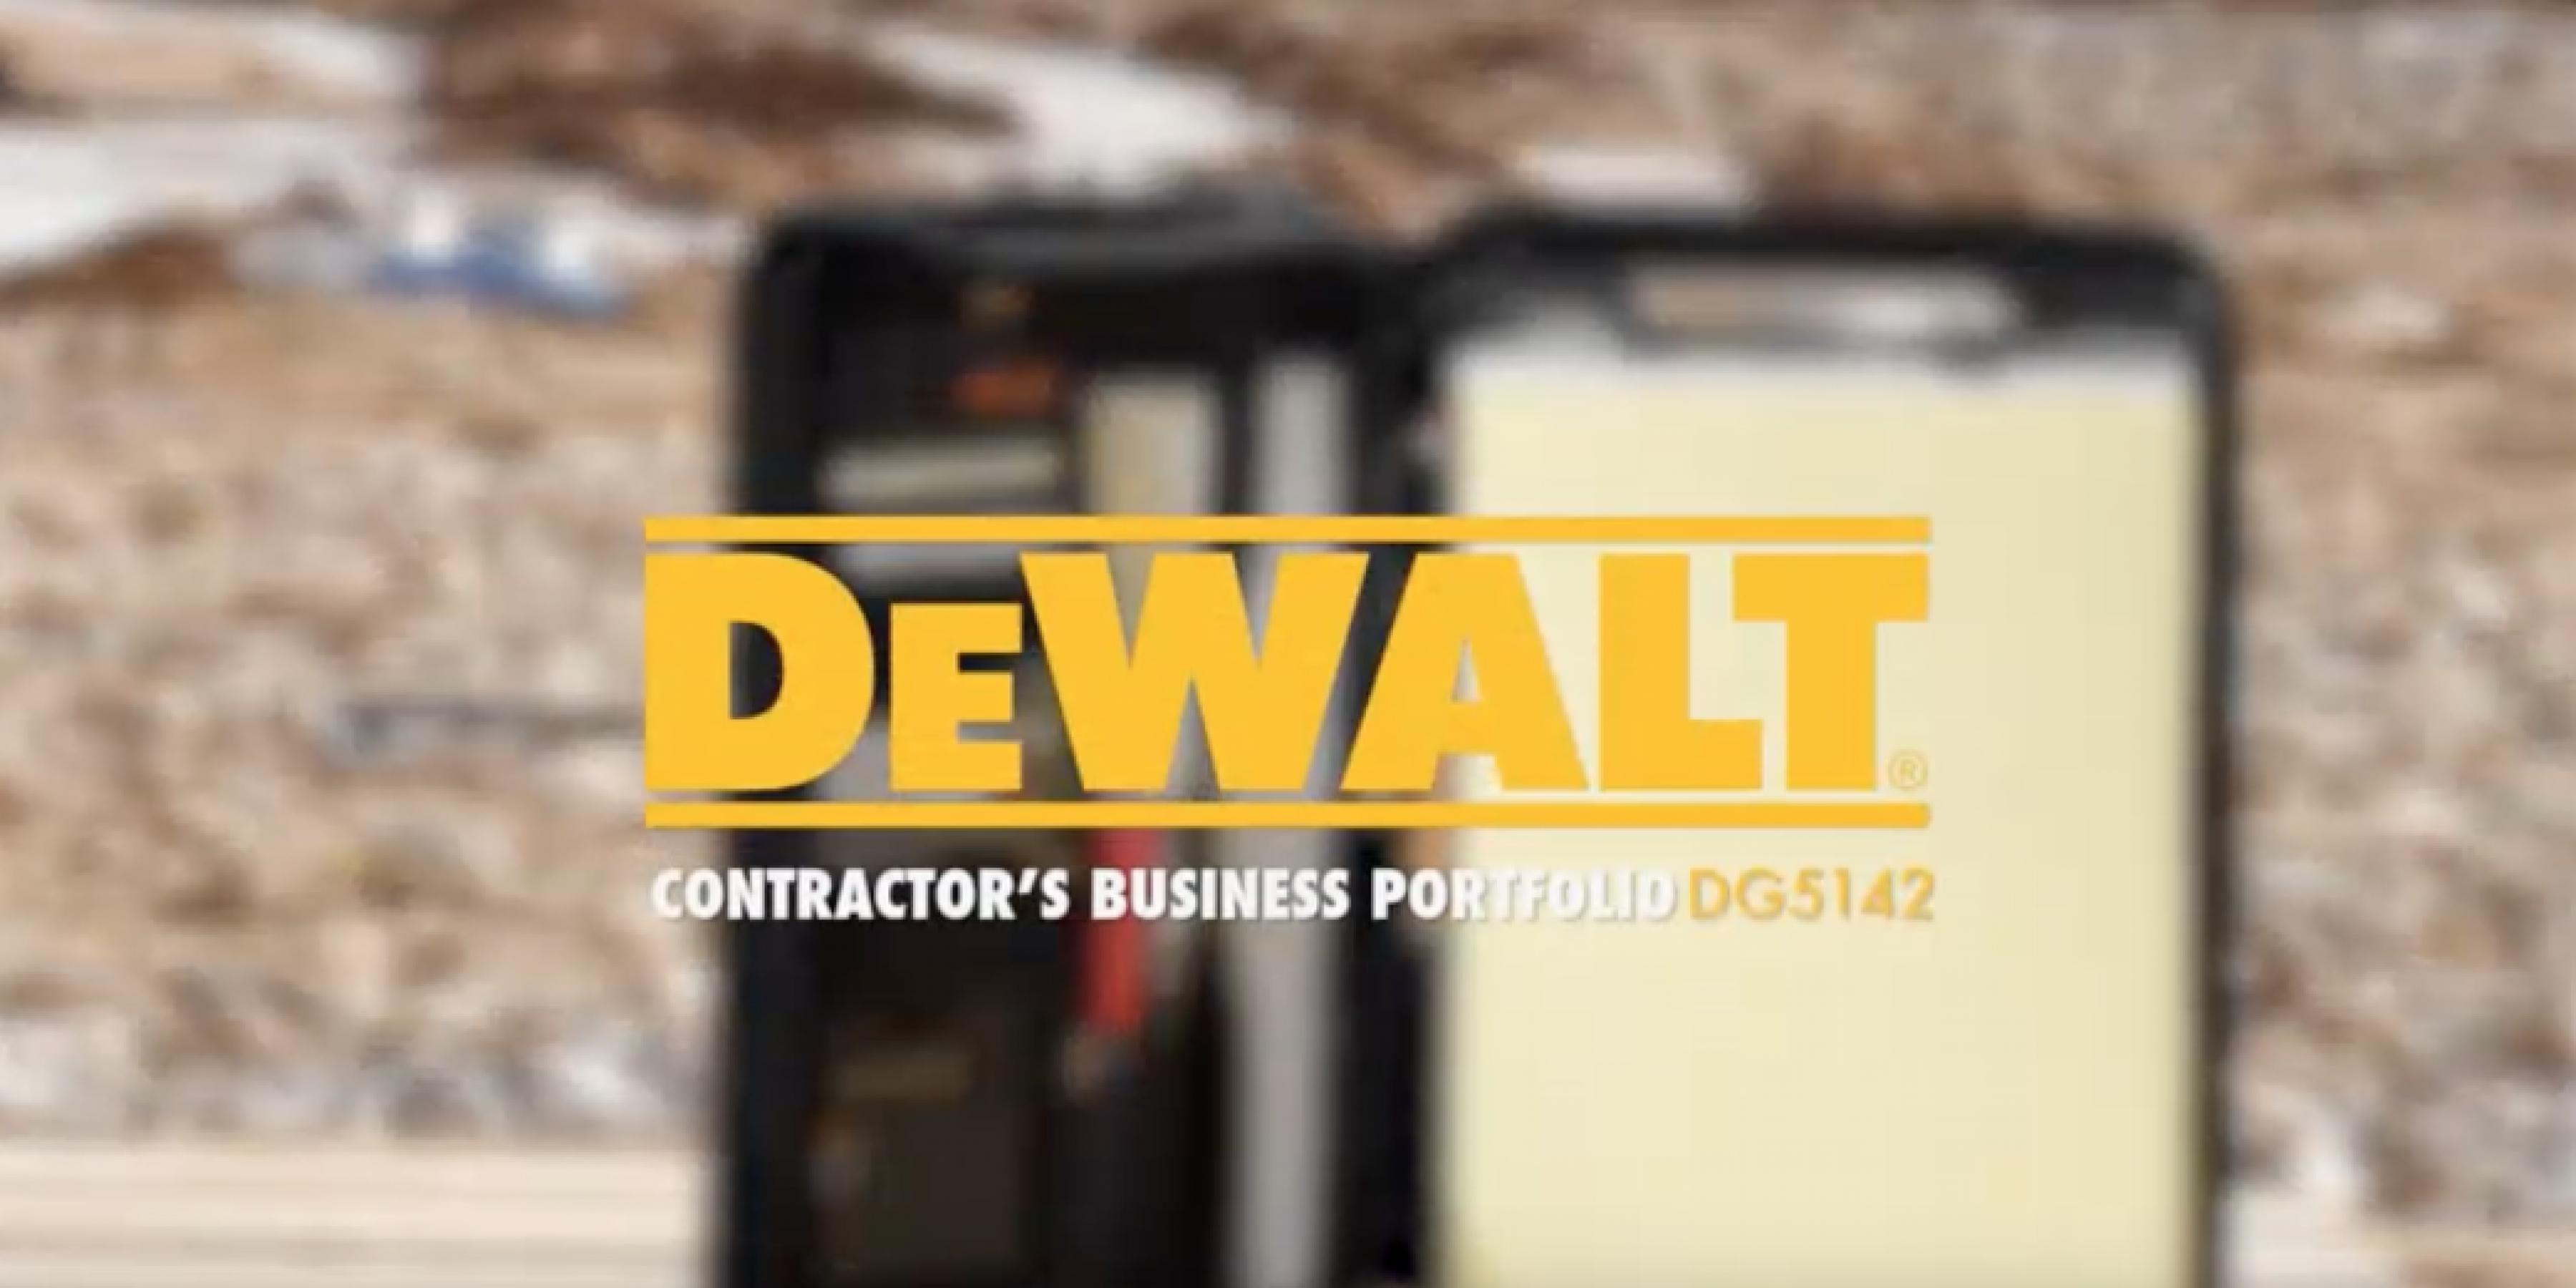 DEWALT DG5142 Lighted Pro Contractor's Business Portfolio